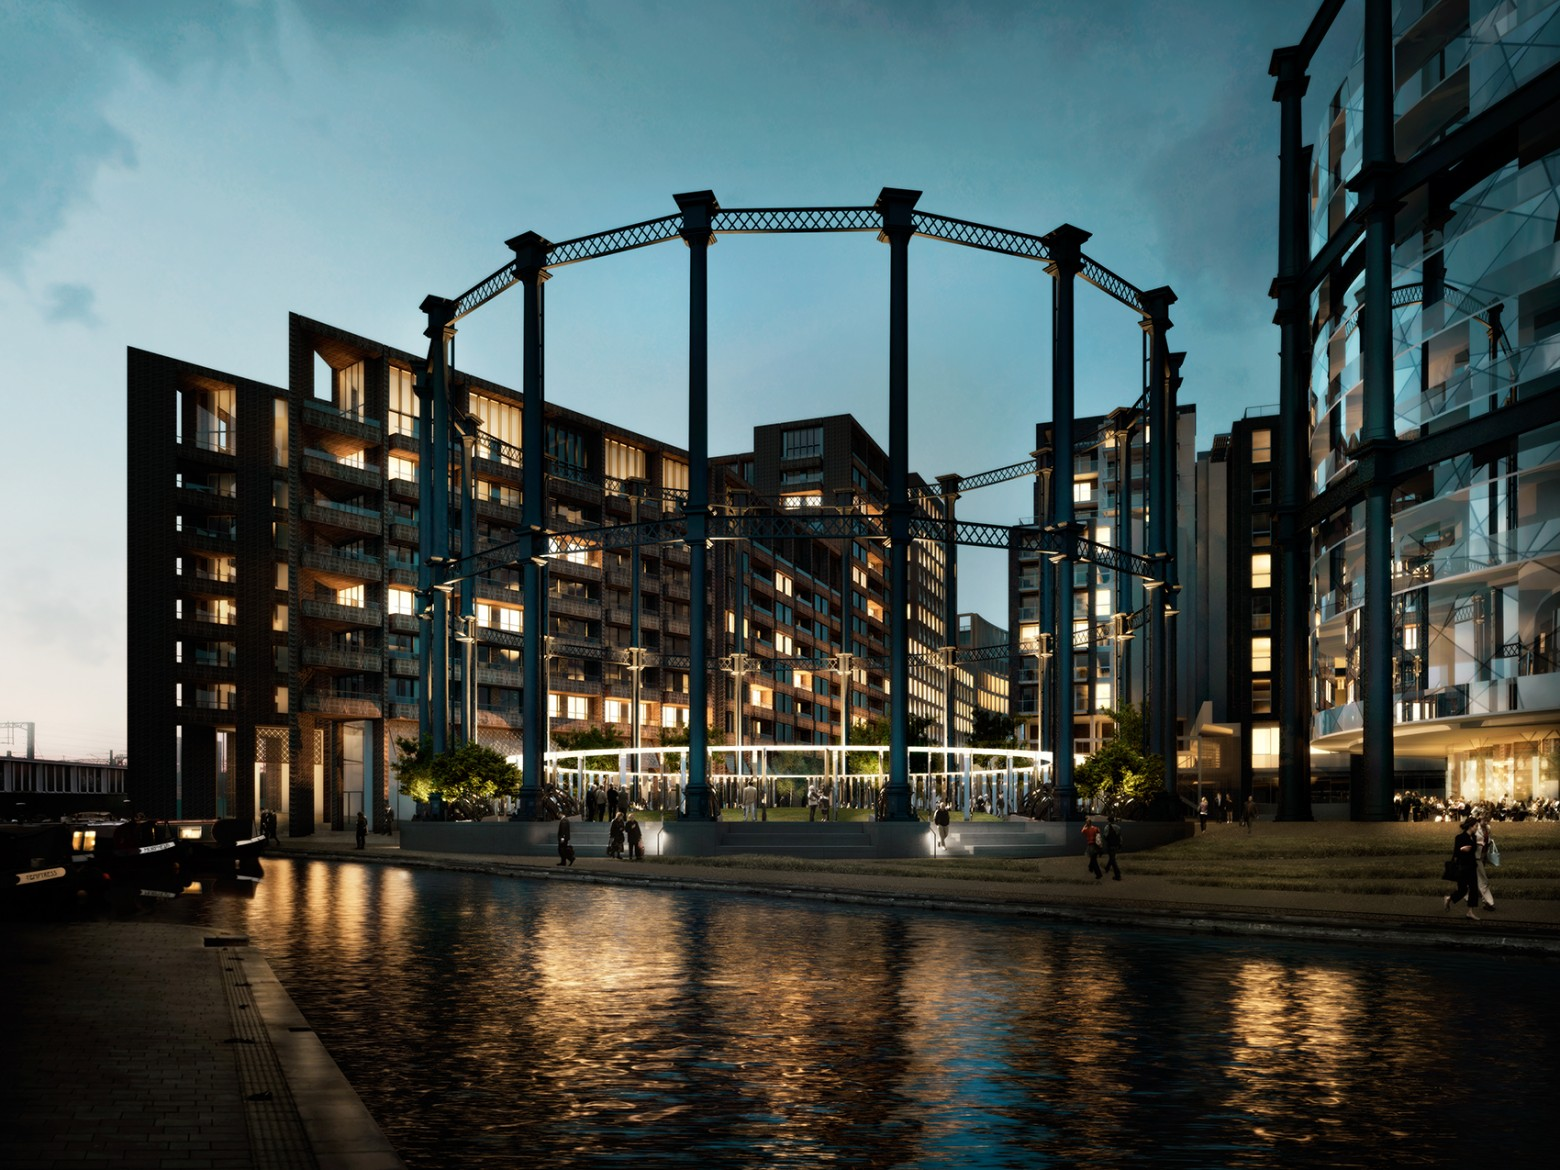 Gasholder No.8 granted consent